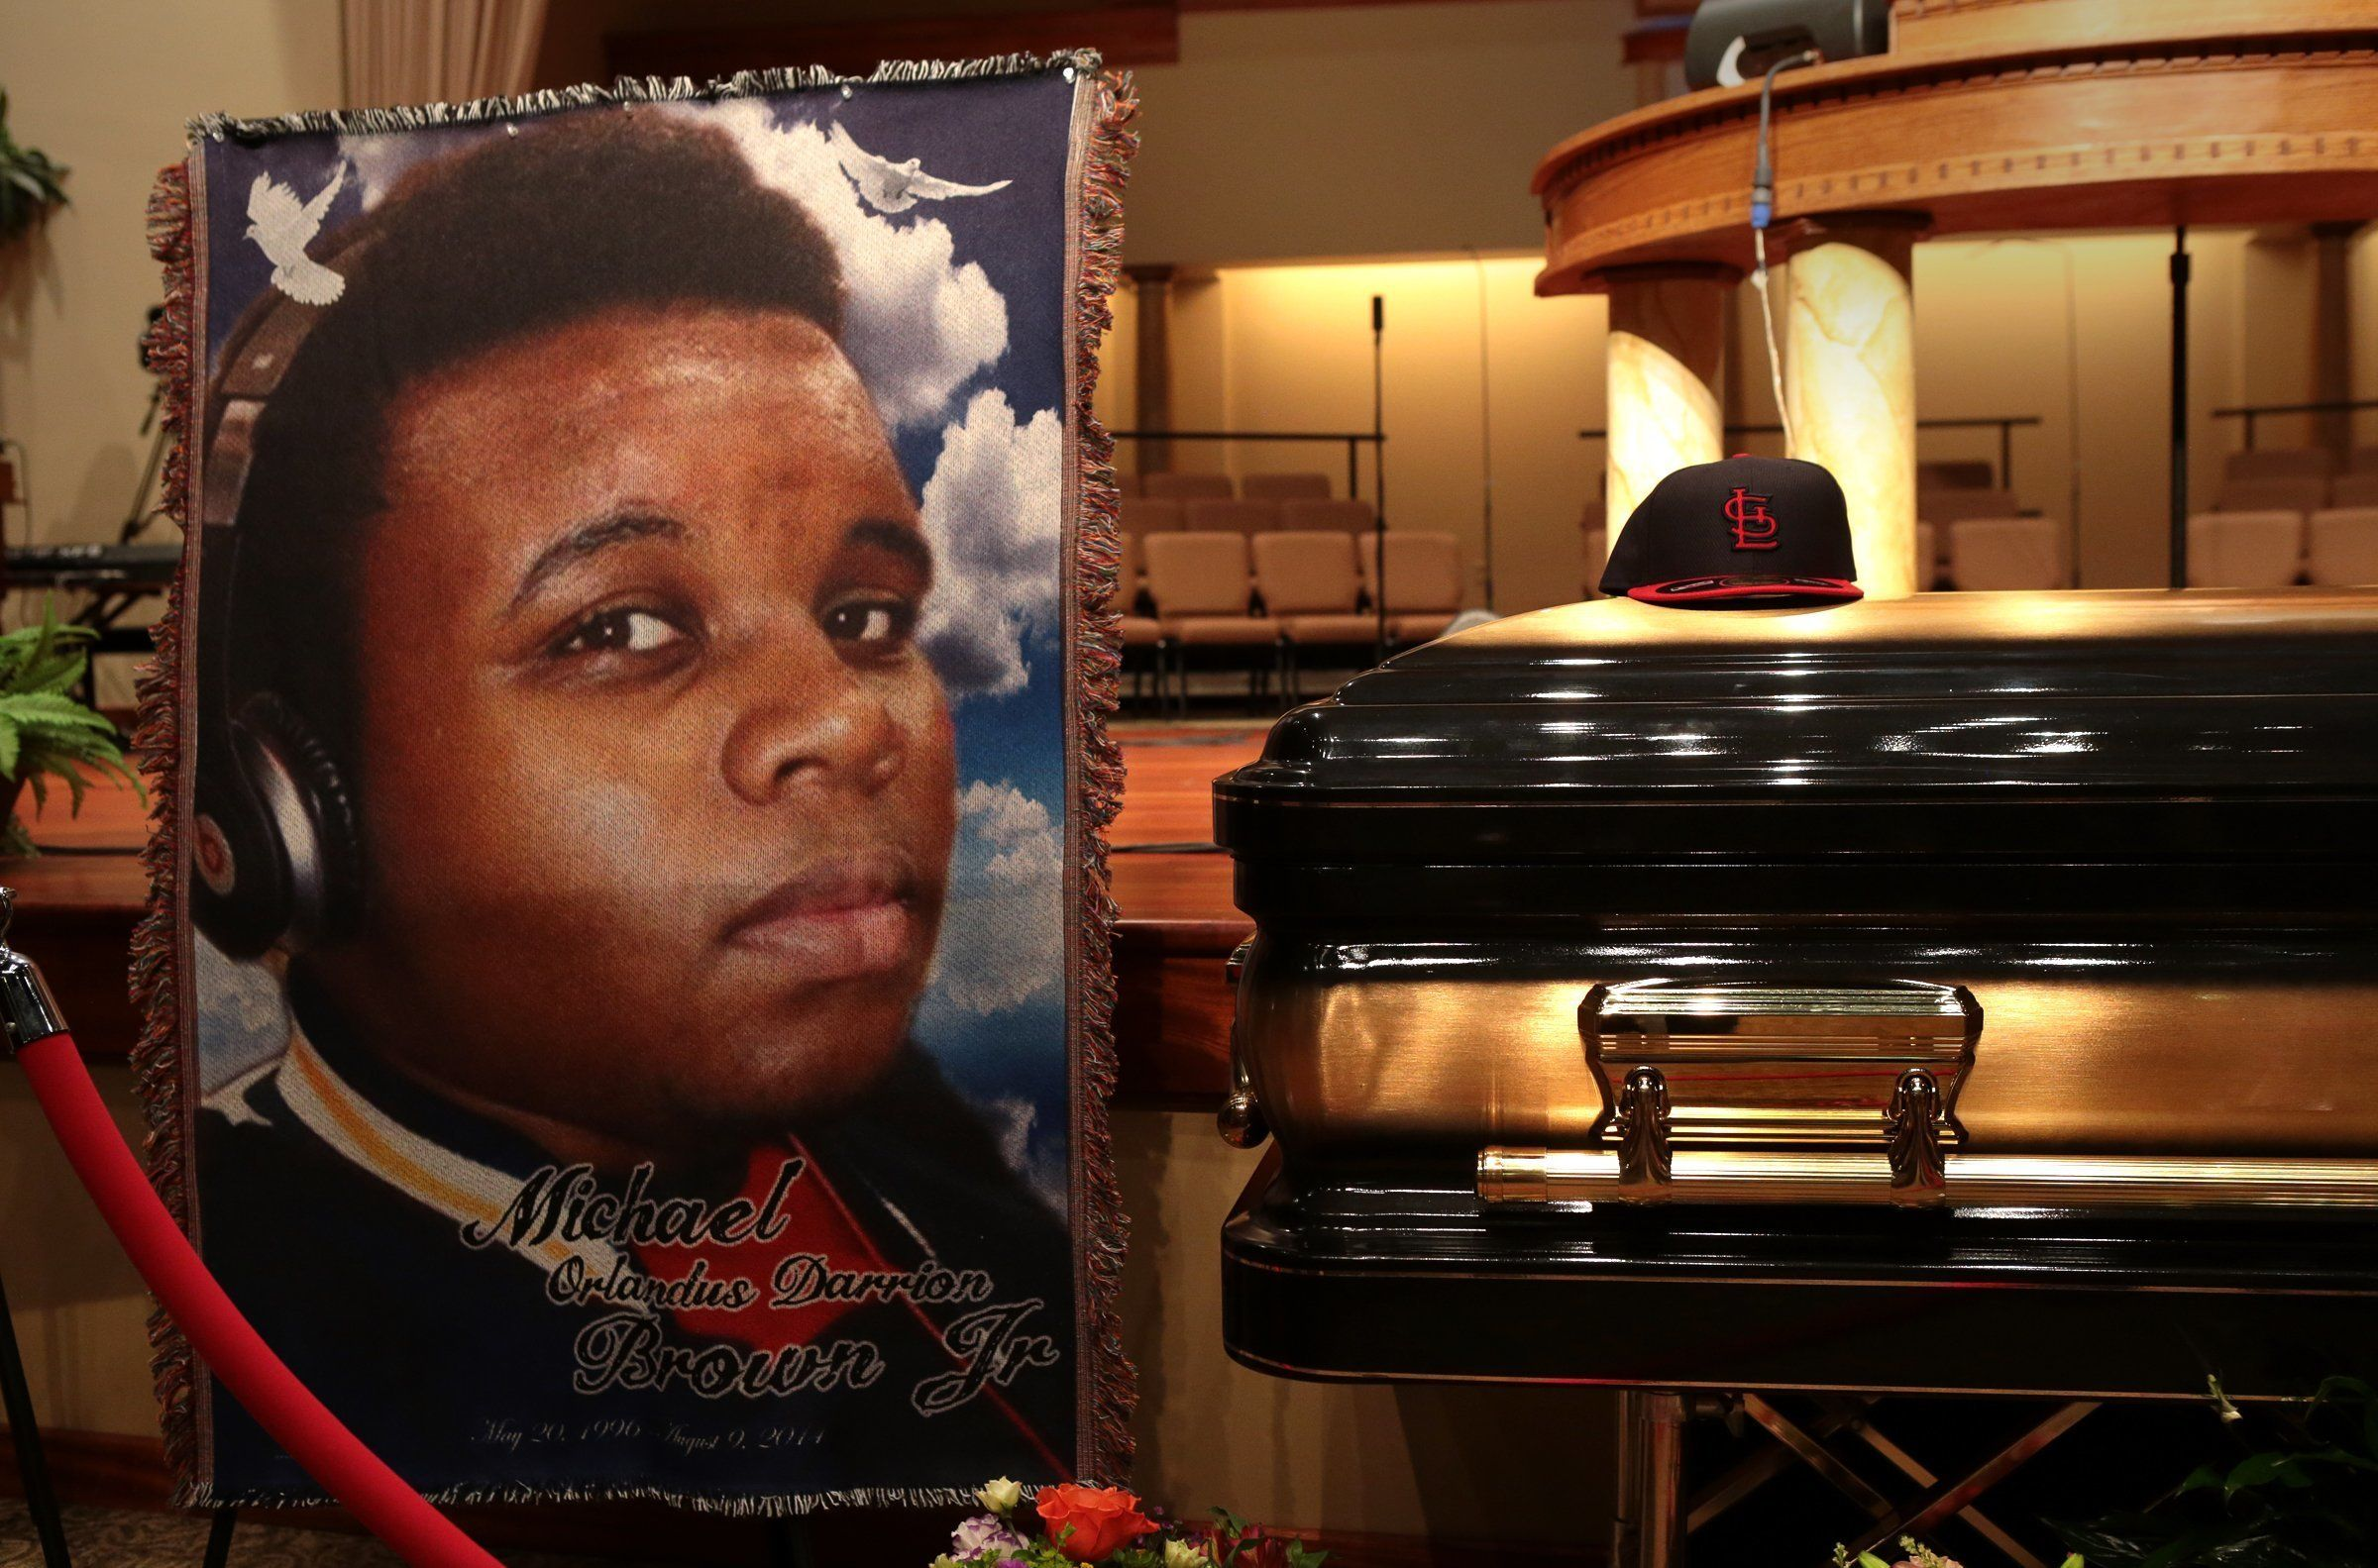 ST. LOUIS, MO - AUGUST 25:  The casket of Michael Brown sits inside Friendly Temple Missionary Baptist Church awaiting the start of his funeral on August 25, 2014 in St. Louis Missouri. Michael Brown,18 year-old unarmed teenager, was shot and killed by a  Ferguson Police Officer Darren Wilson in the nearby town of Ferguson, Missouri on August 9. His death caused several days of violent protests along with rioting and looting in Ferguson.  (Photo by Robert Cohen-Pool/Getty Images)